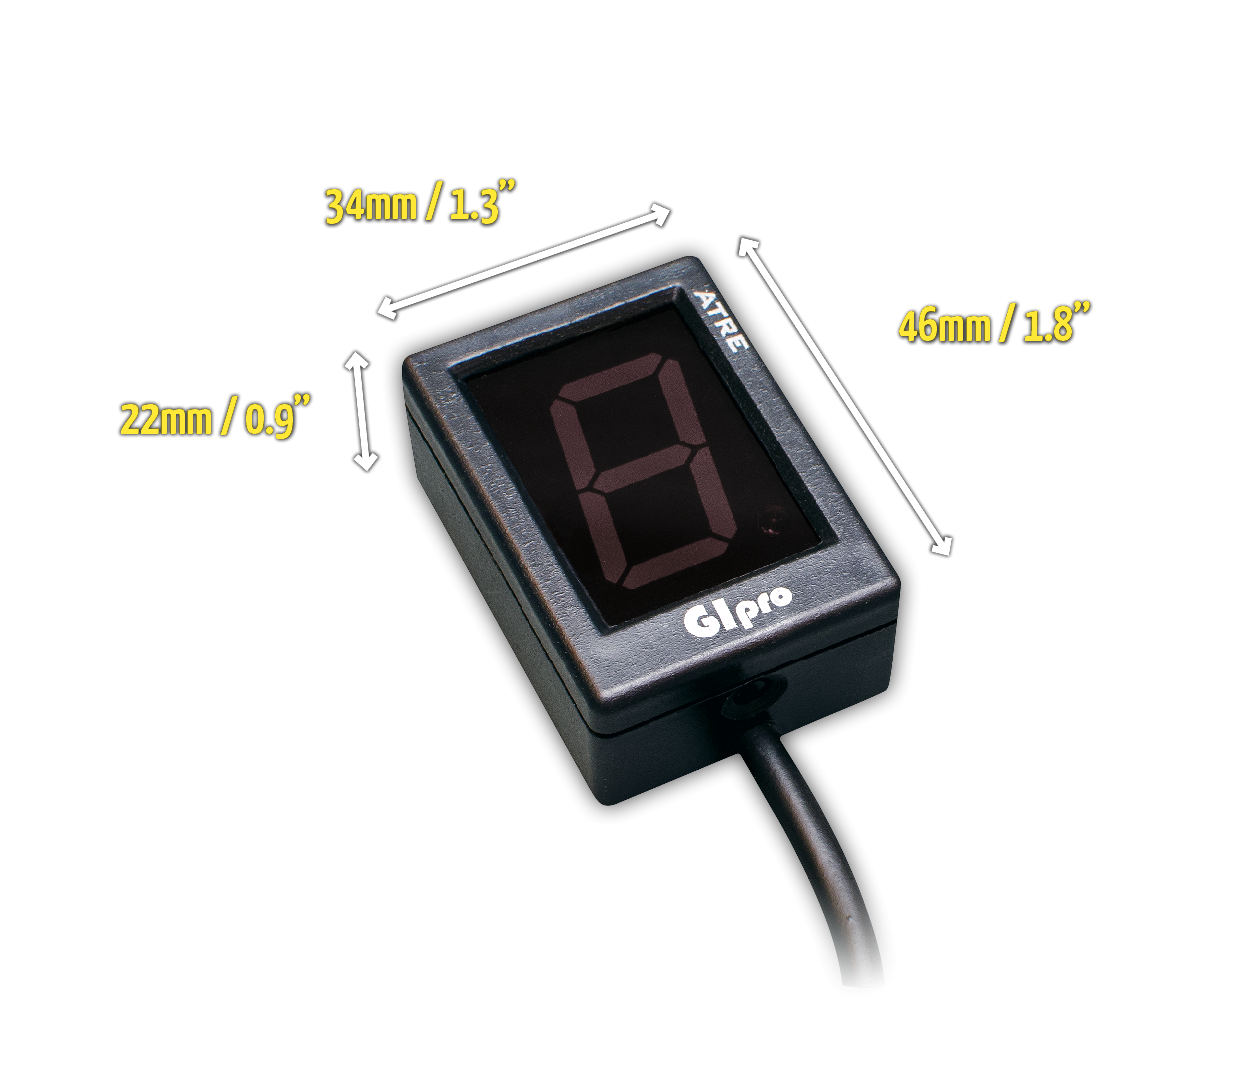 Gipro Atre G2 Gear Indicator By Healtech Electronics Ltd Wiring Diagram Dimensions